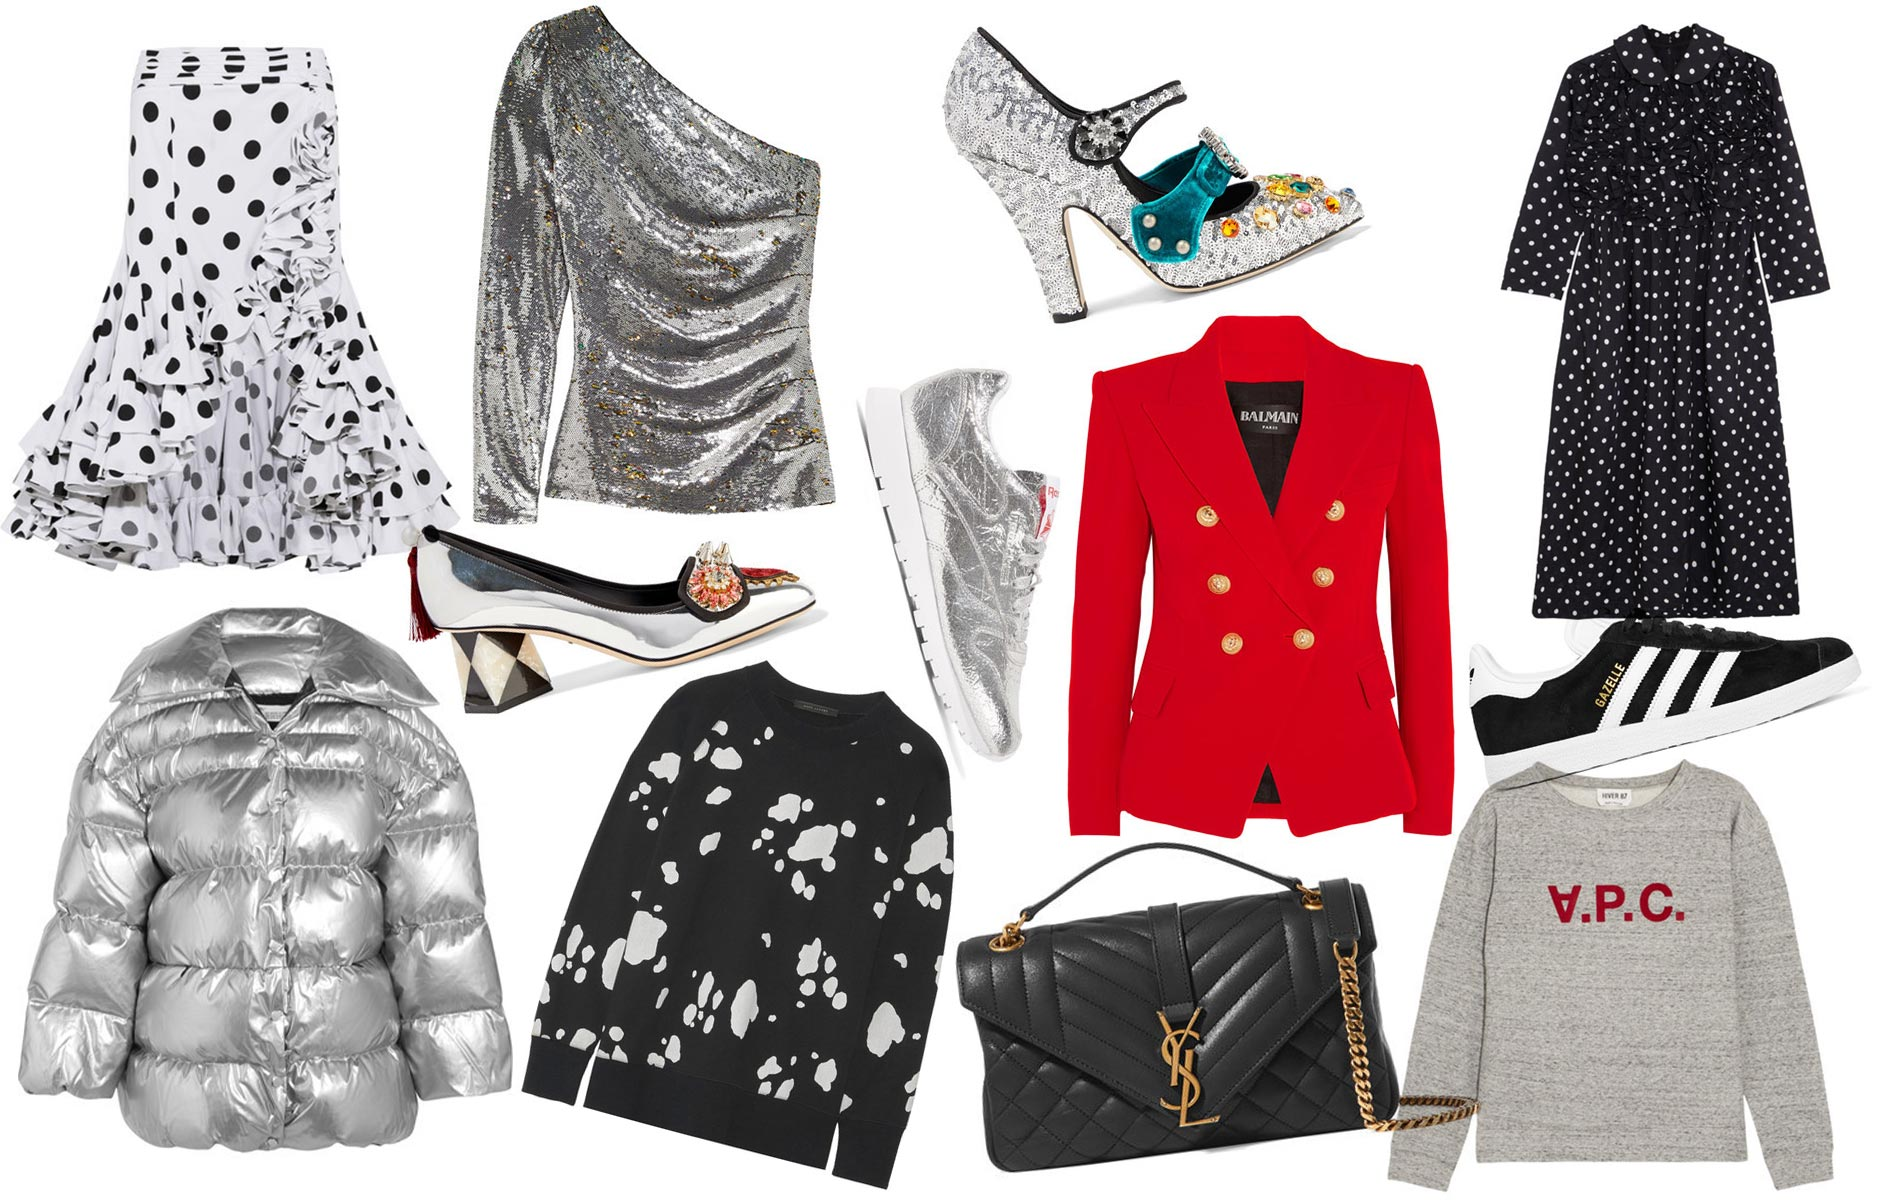 Anna Roufos Sosa of Noir Friday shares her top picks from the Net-A-Porter year end sale.